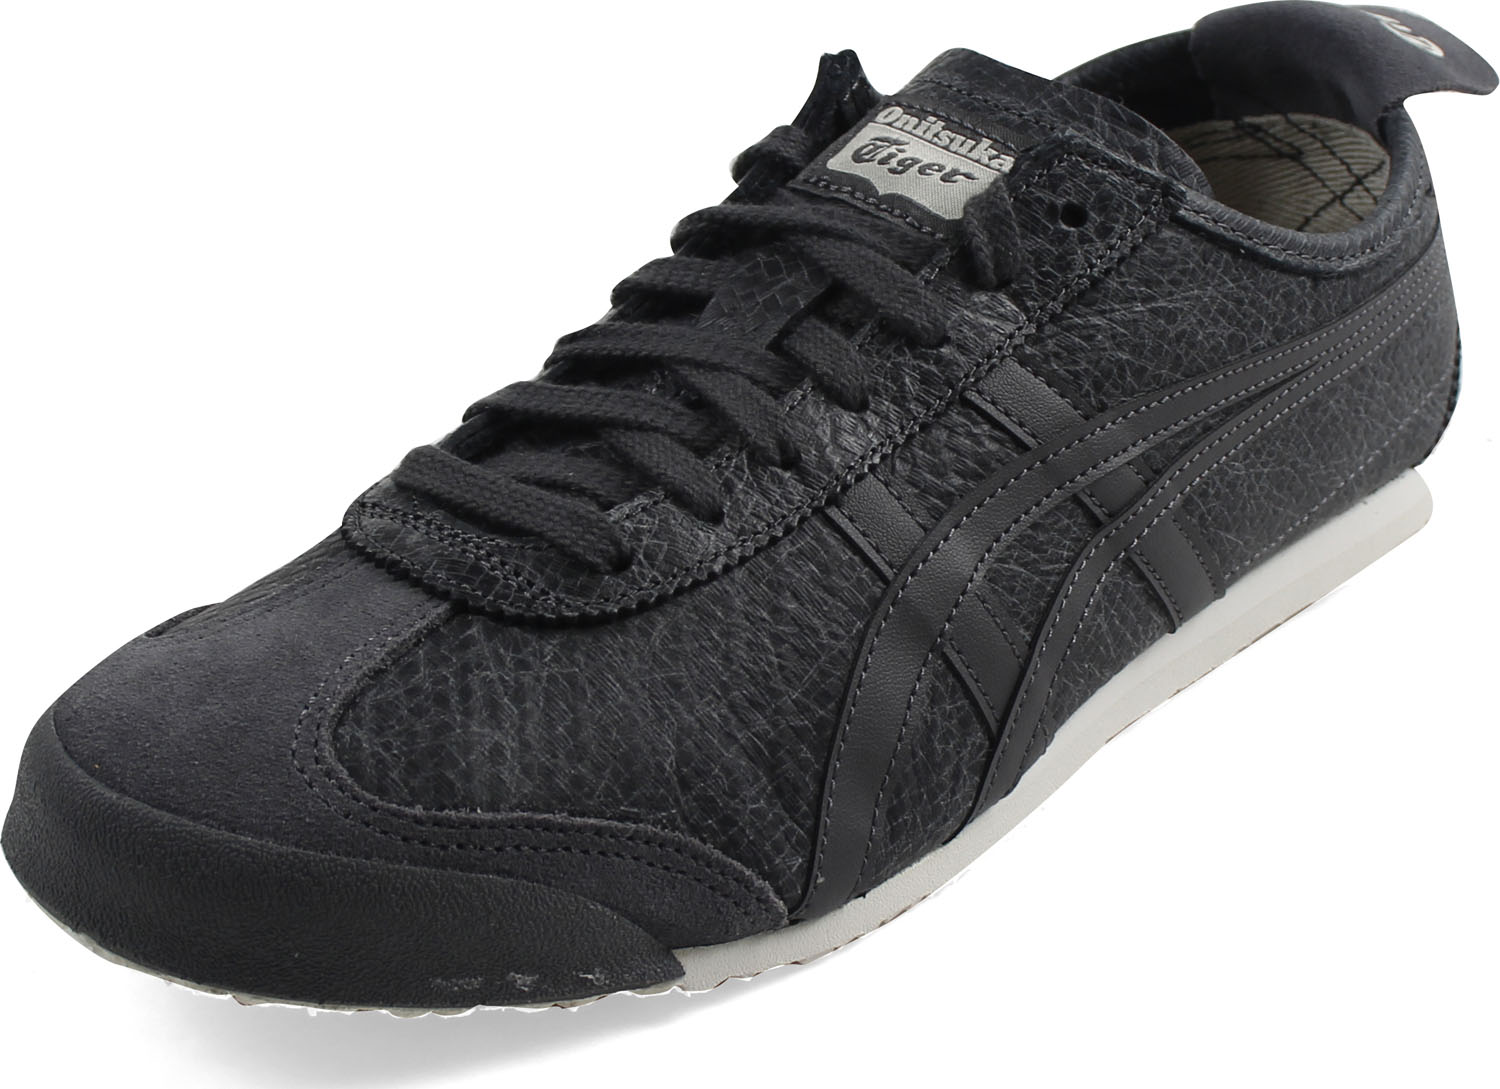 brand new ad010 7e87d Onitsuka Tiger - Unisex-Adult Mexico 66 Shoes